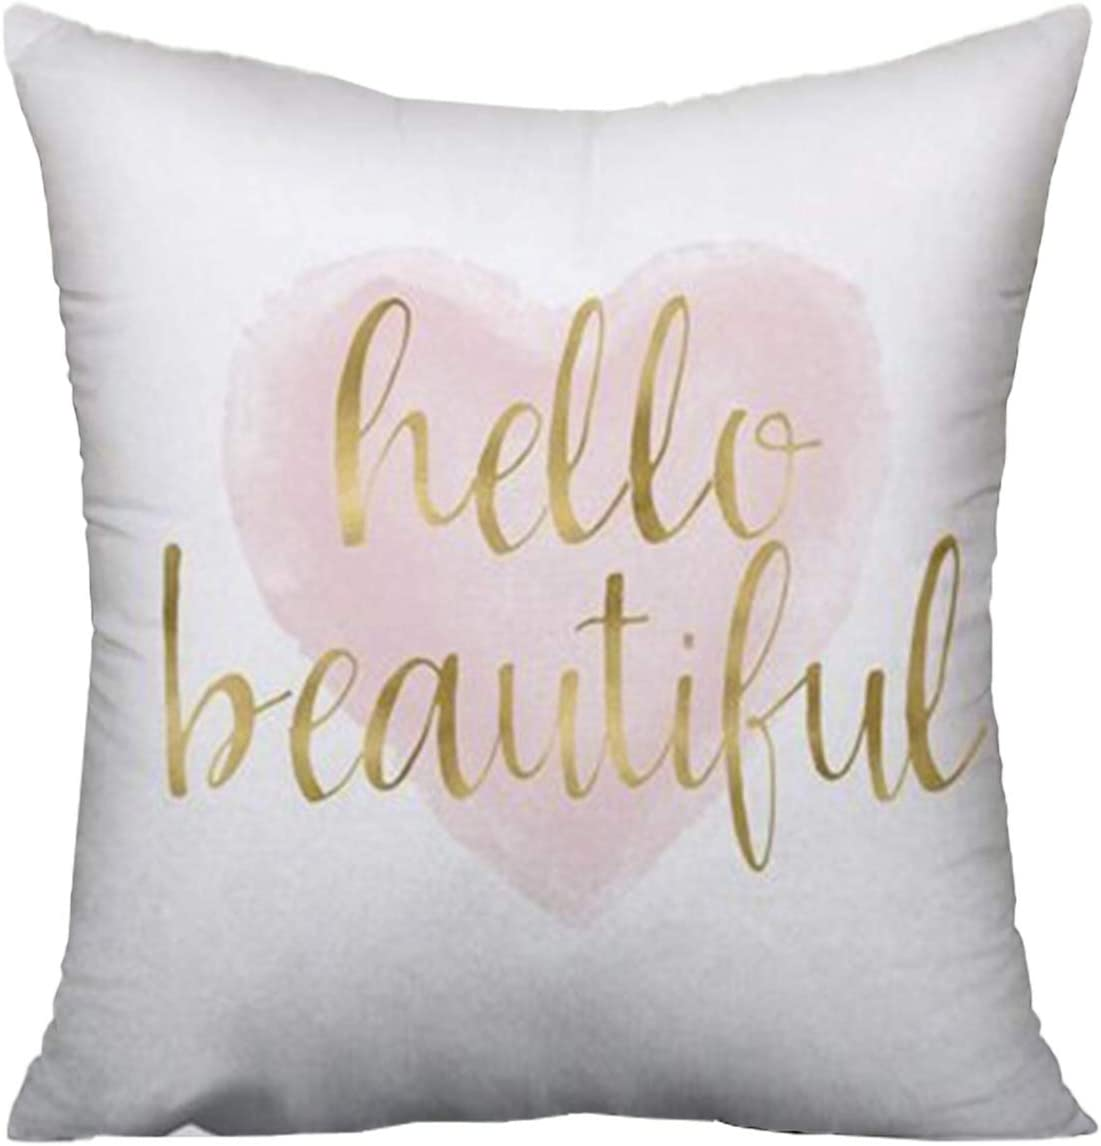 Jagfhhs Hello Beautiful Throw Pillow Covers Blush Pink Gold Watercolor Heart Cushion Pillowcase Decorative 16x16 Inch Home Kitchen